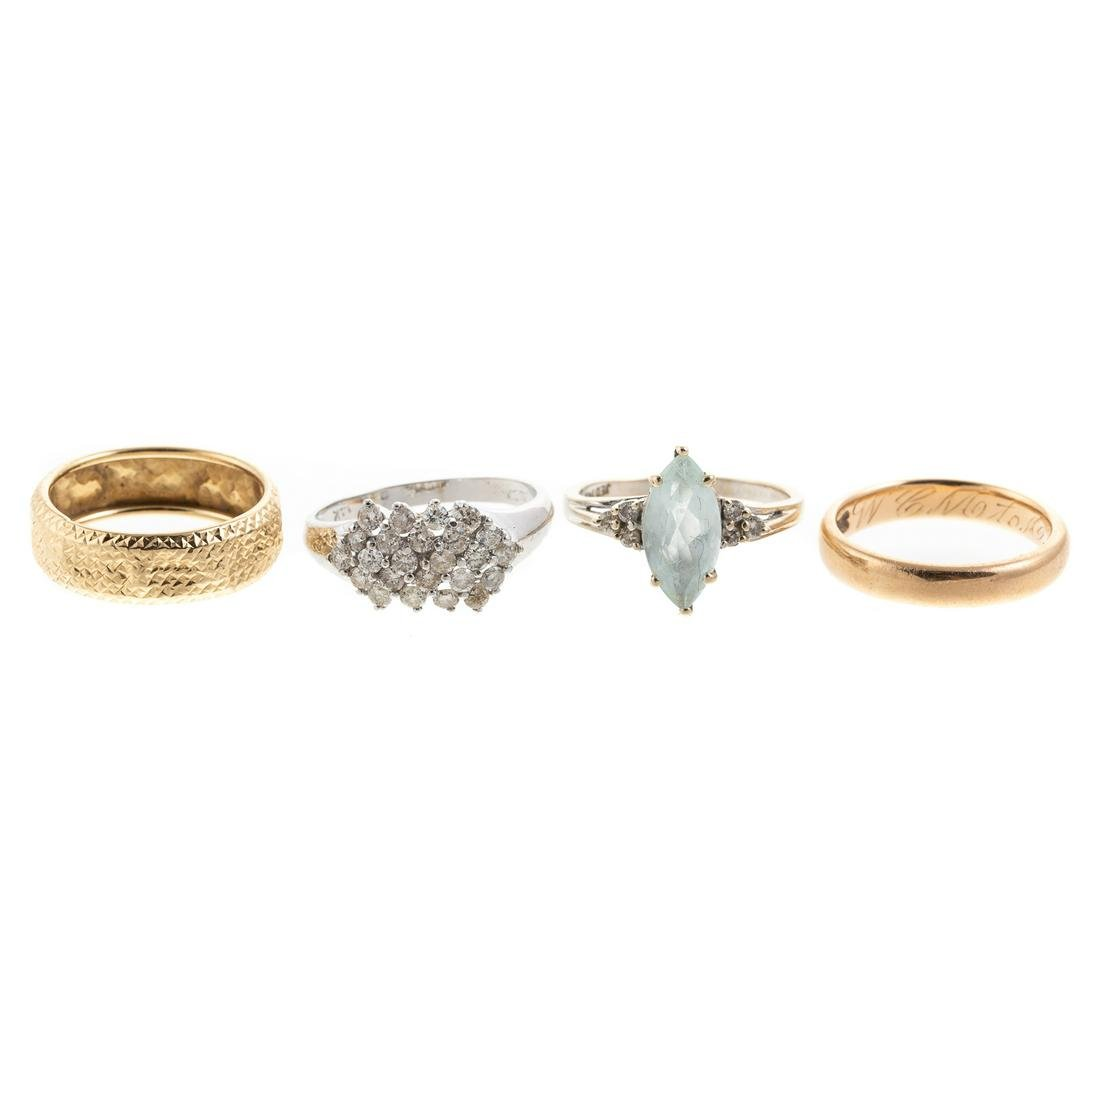 A Collection of Gold, Diamond & Blue Topaz Rings